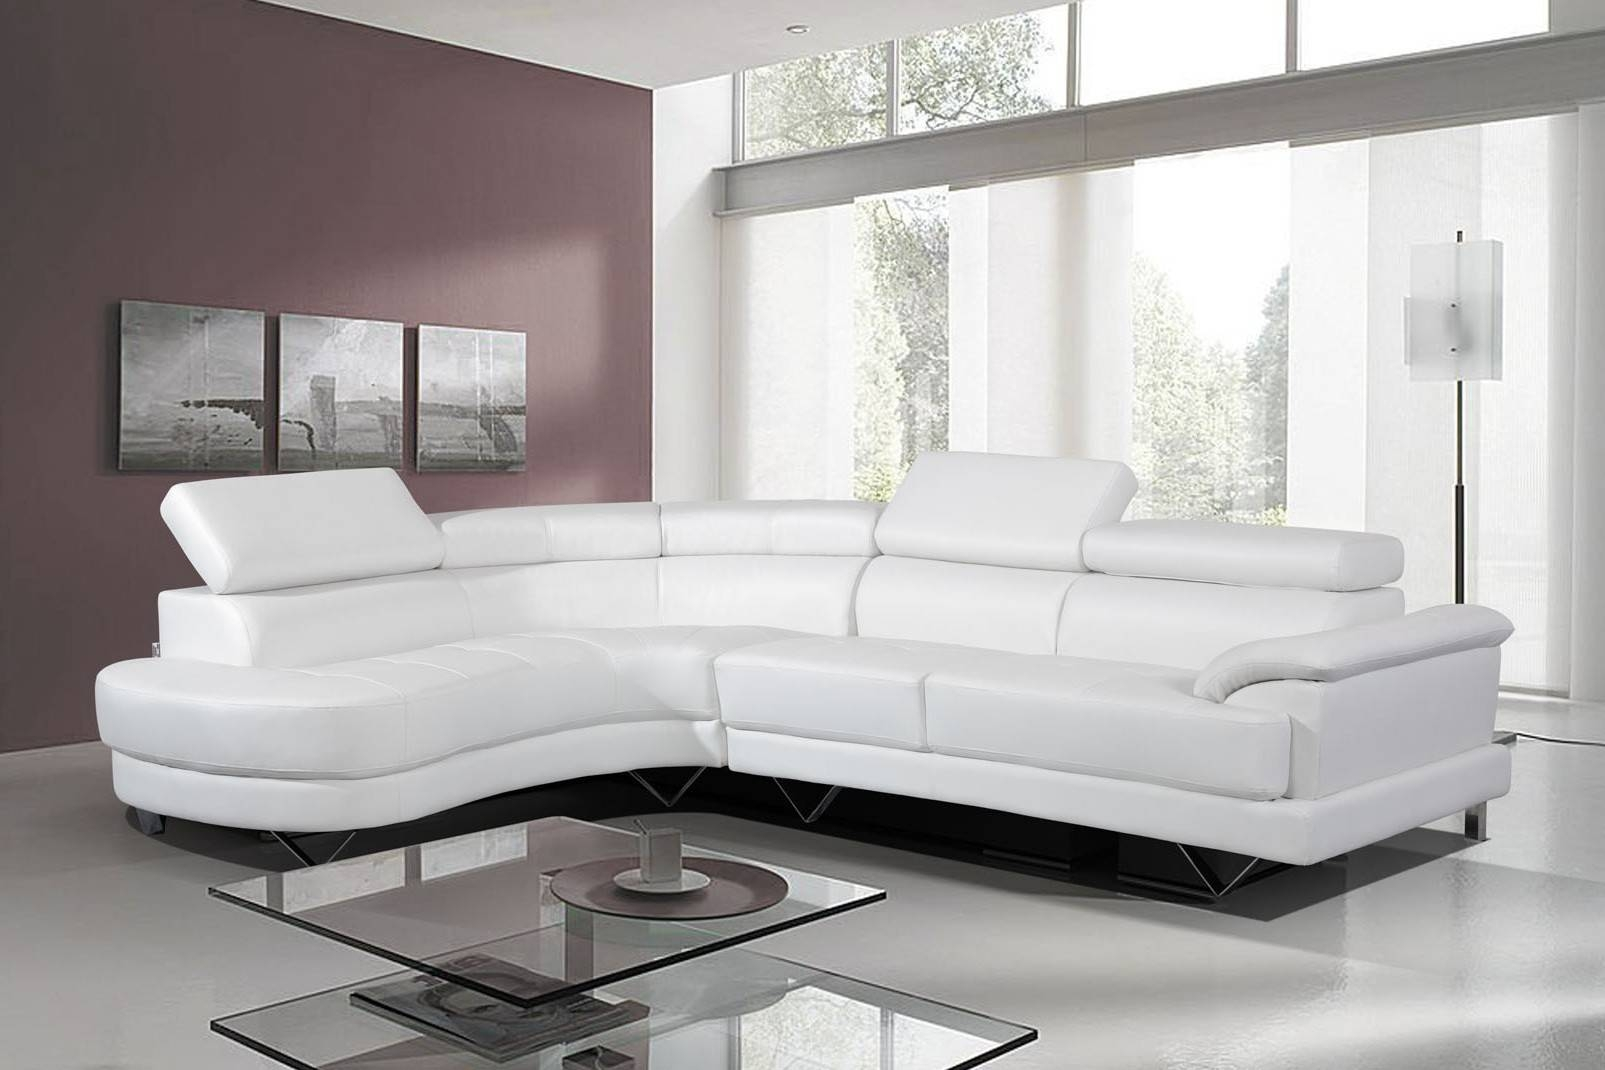 Leather Corner Sofas Elegant Home Design intended for Leather Corner Sofas (Image 20 of 30)